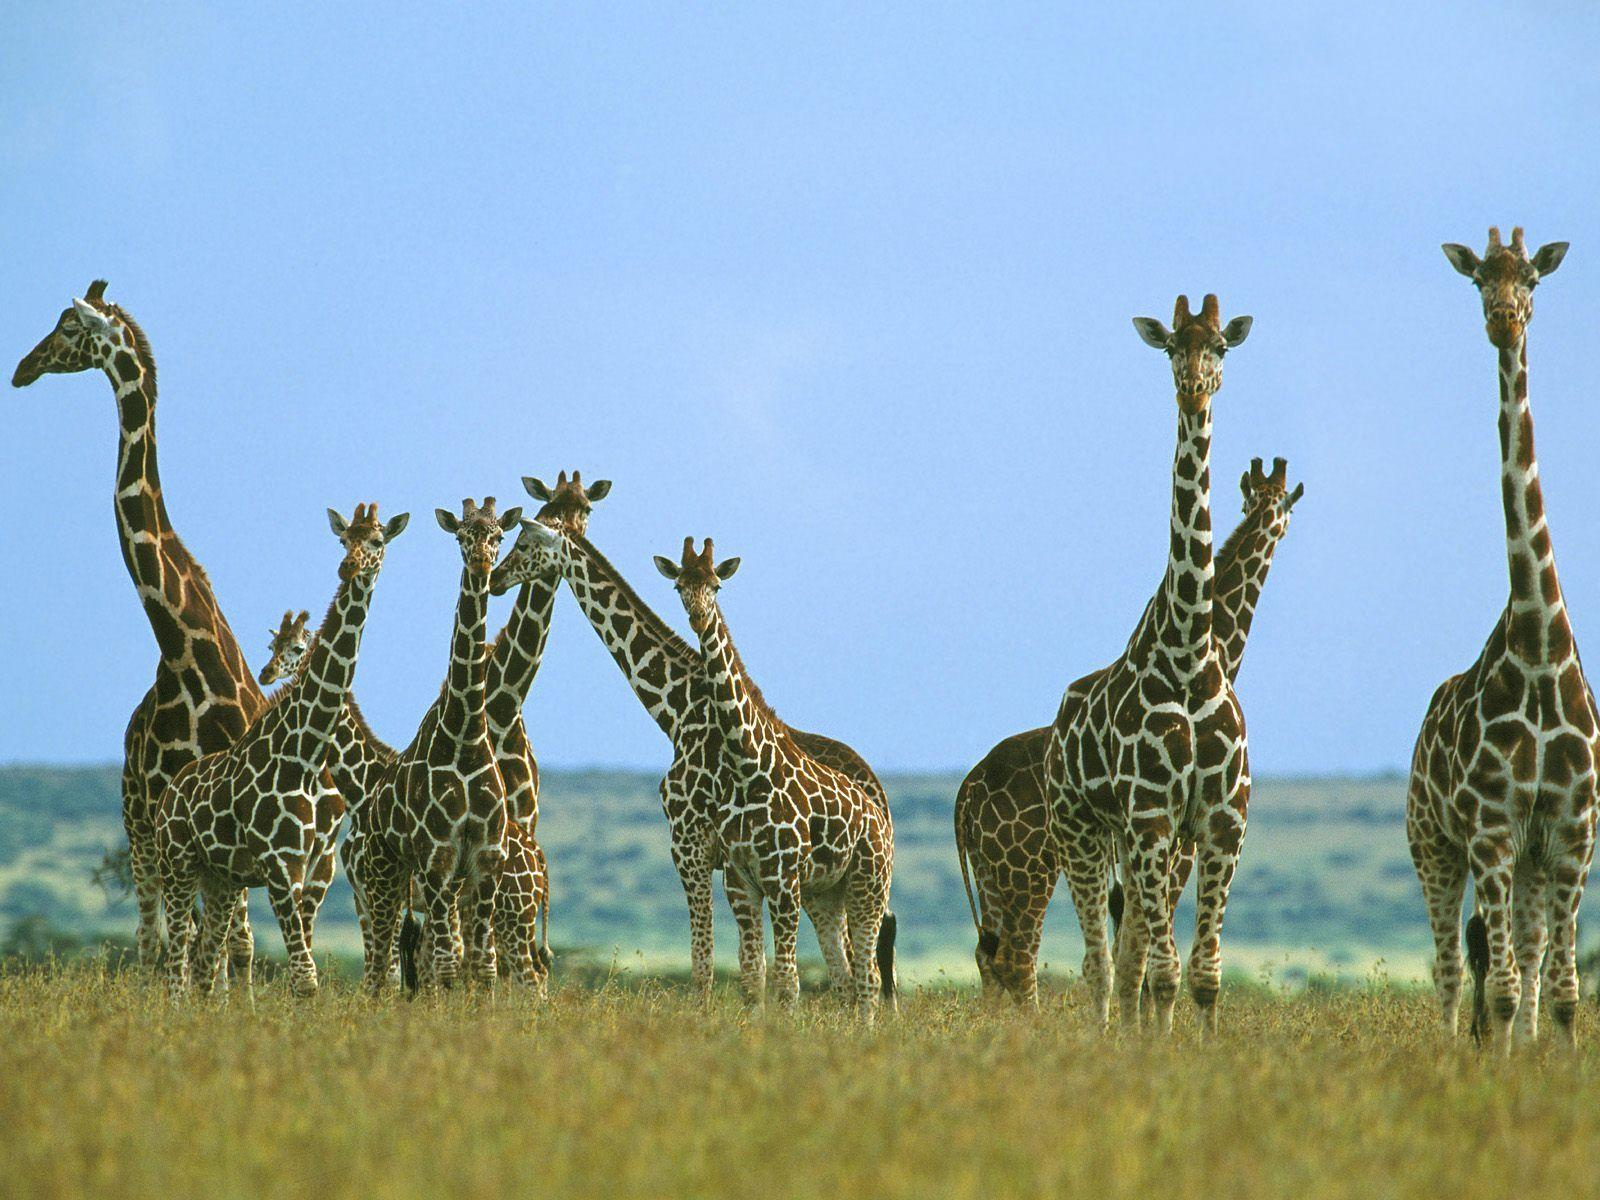 Giraffes Images HD Wallpaper And Background Photos 24515816